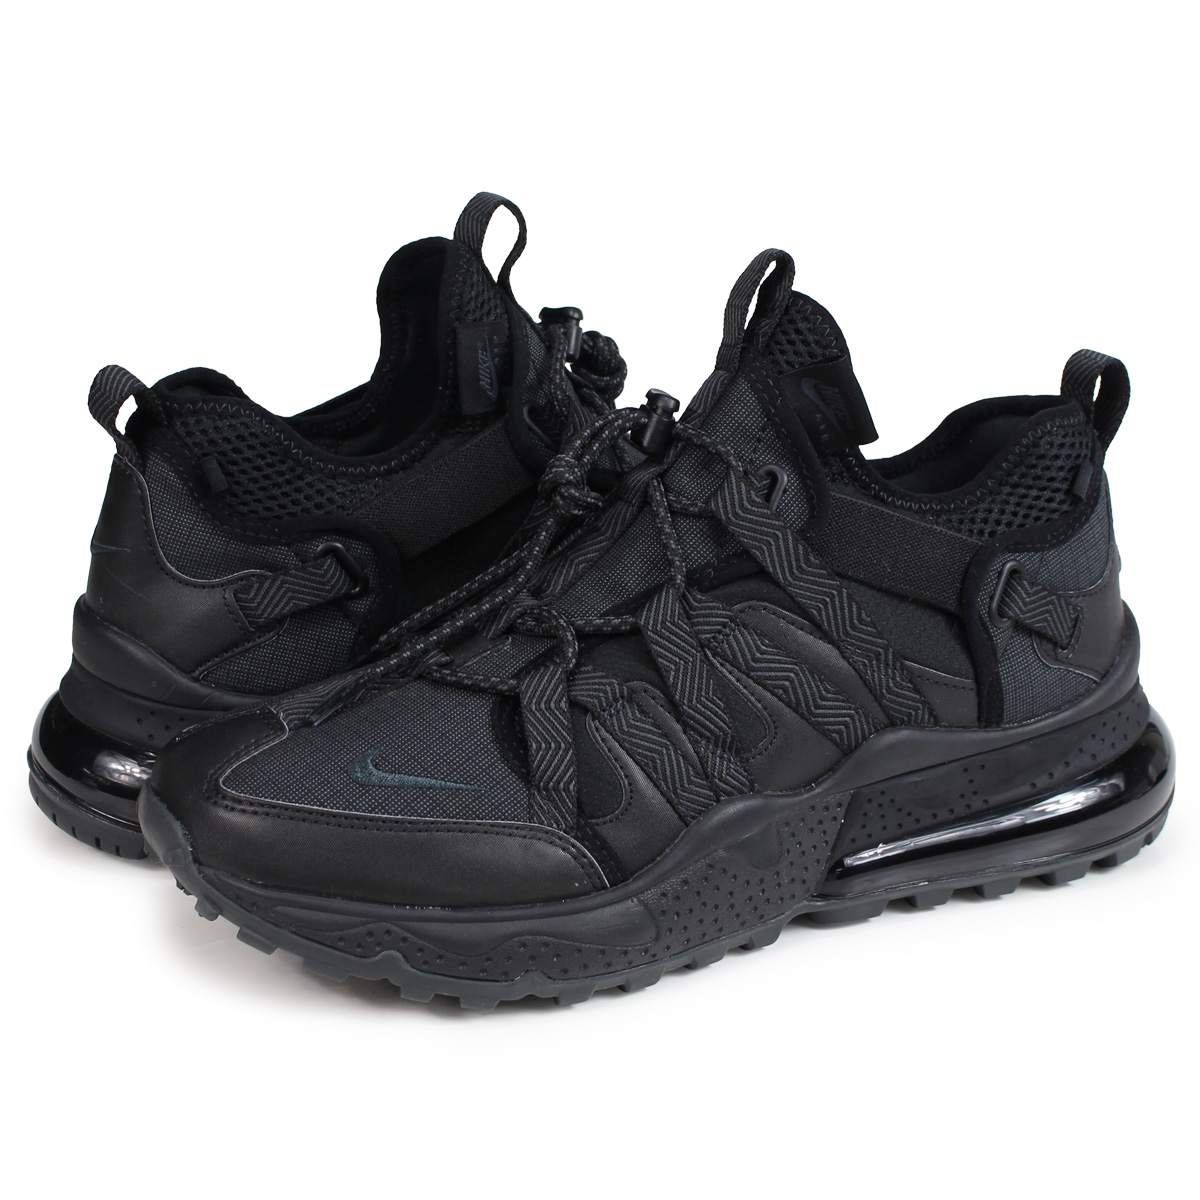 quality design bd82d dbbd4  brand NIKE getting high popularity from sneakers freak